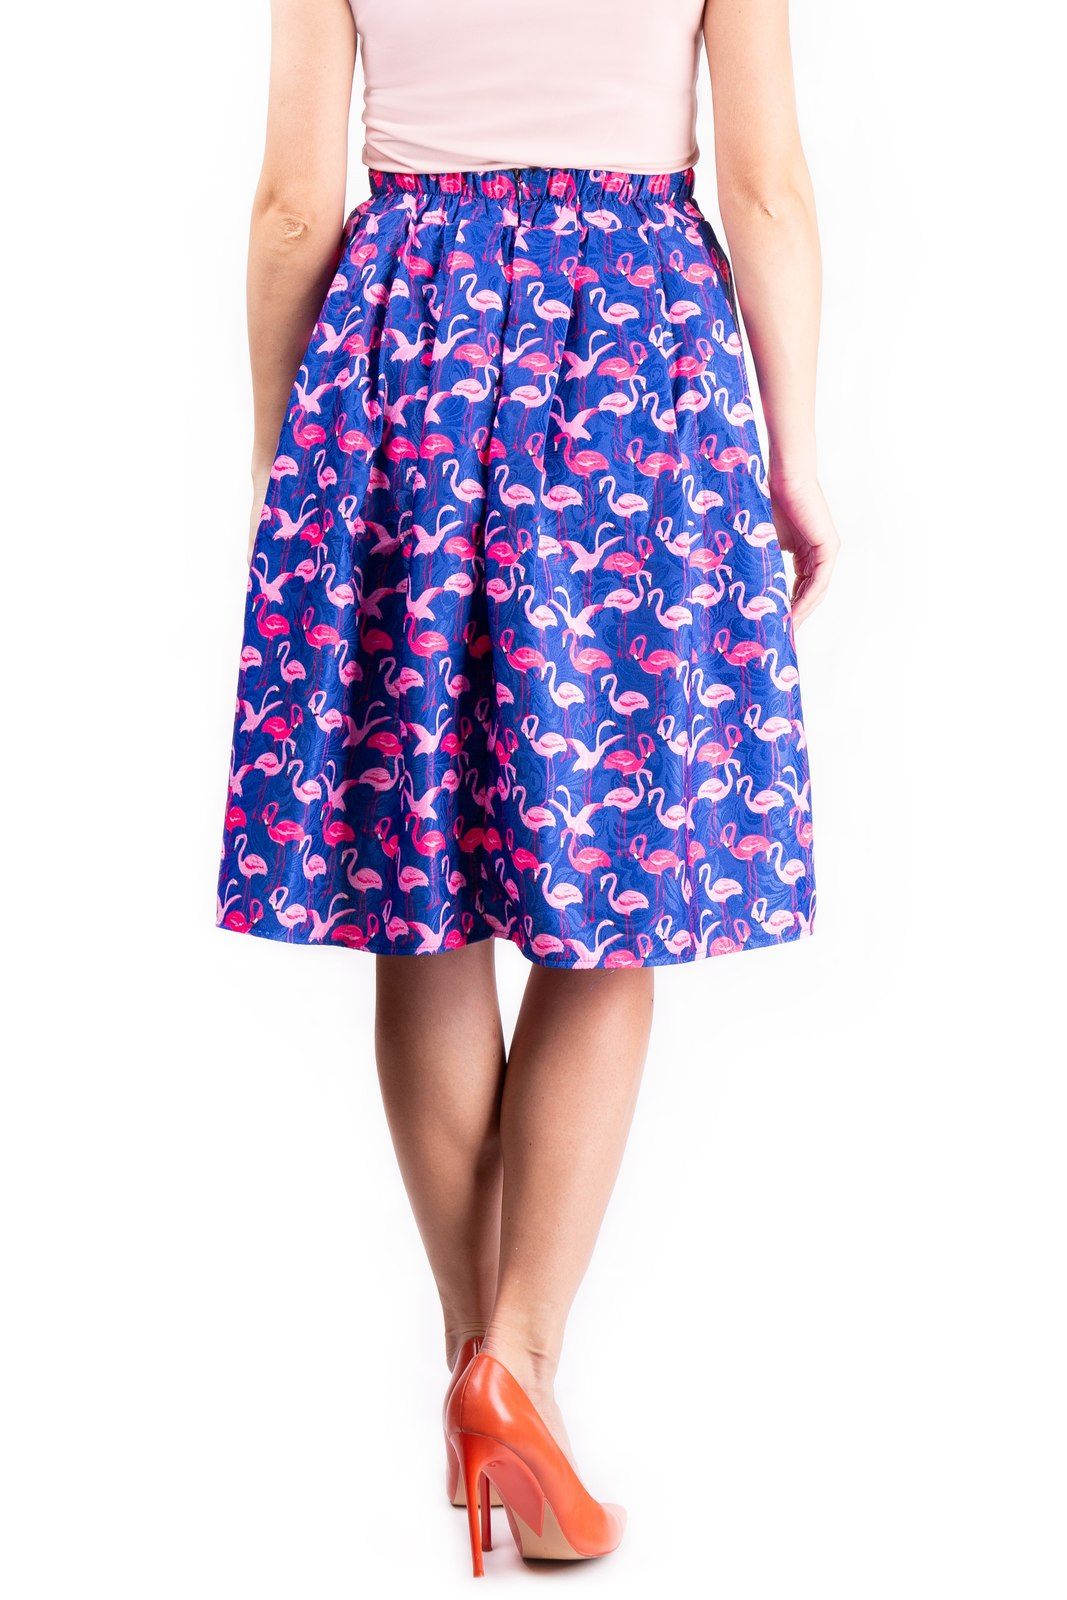 Simpo multicolor knee lenght skirt Blue Flamingo